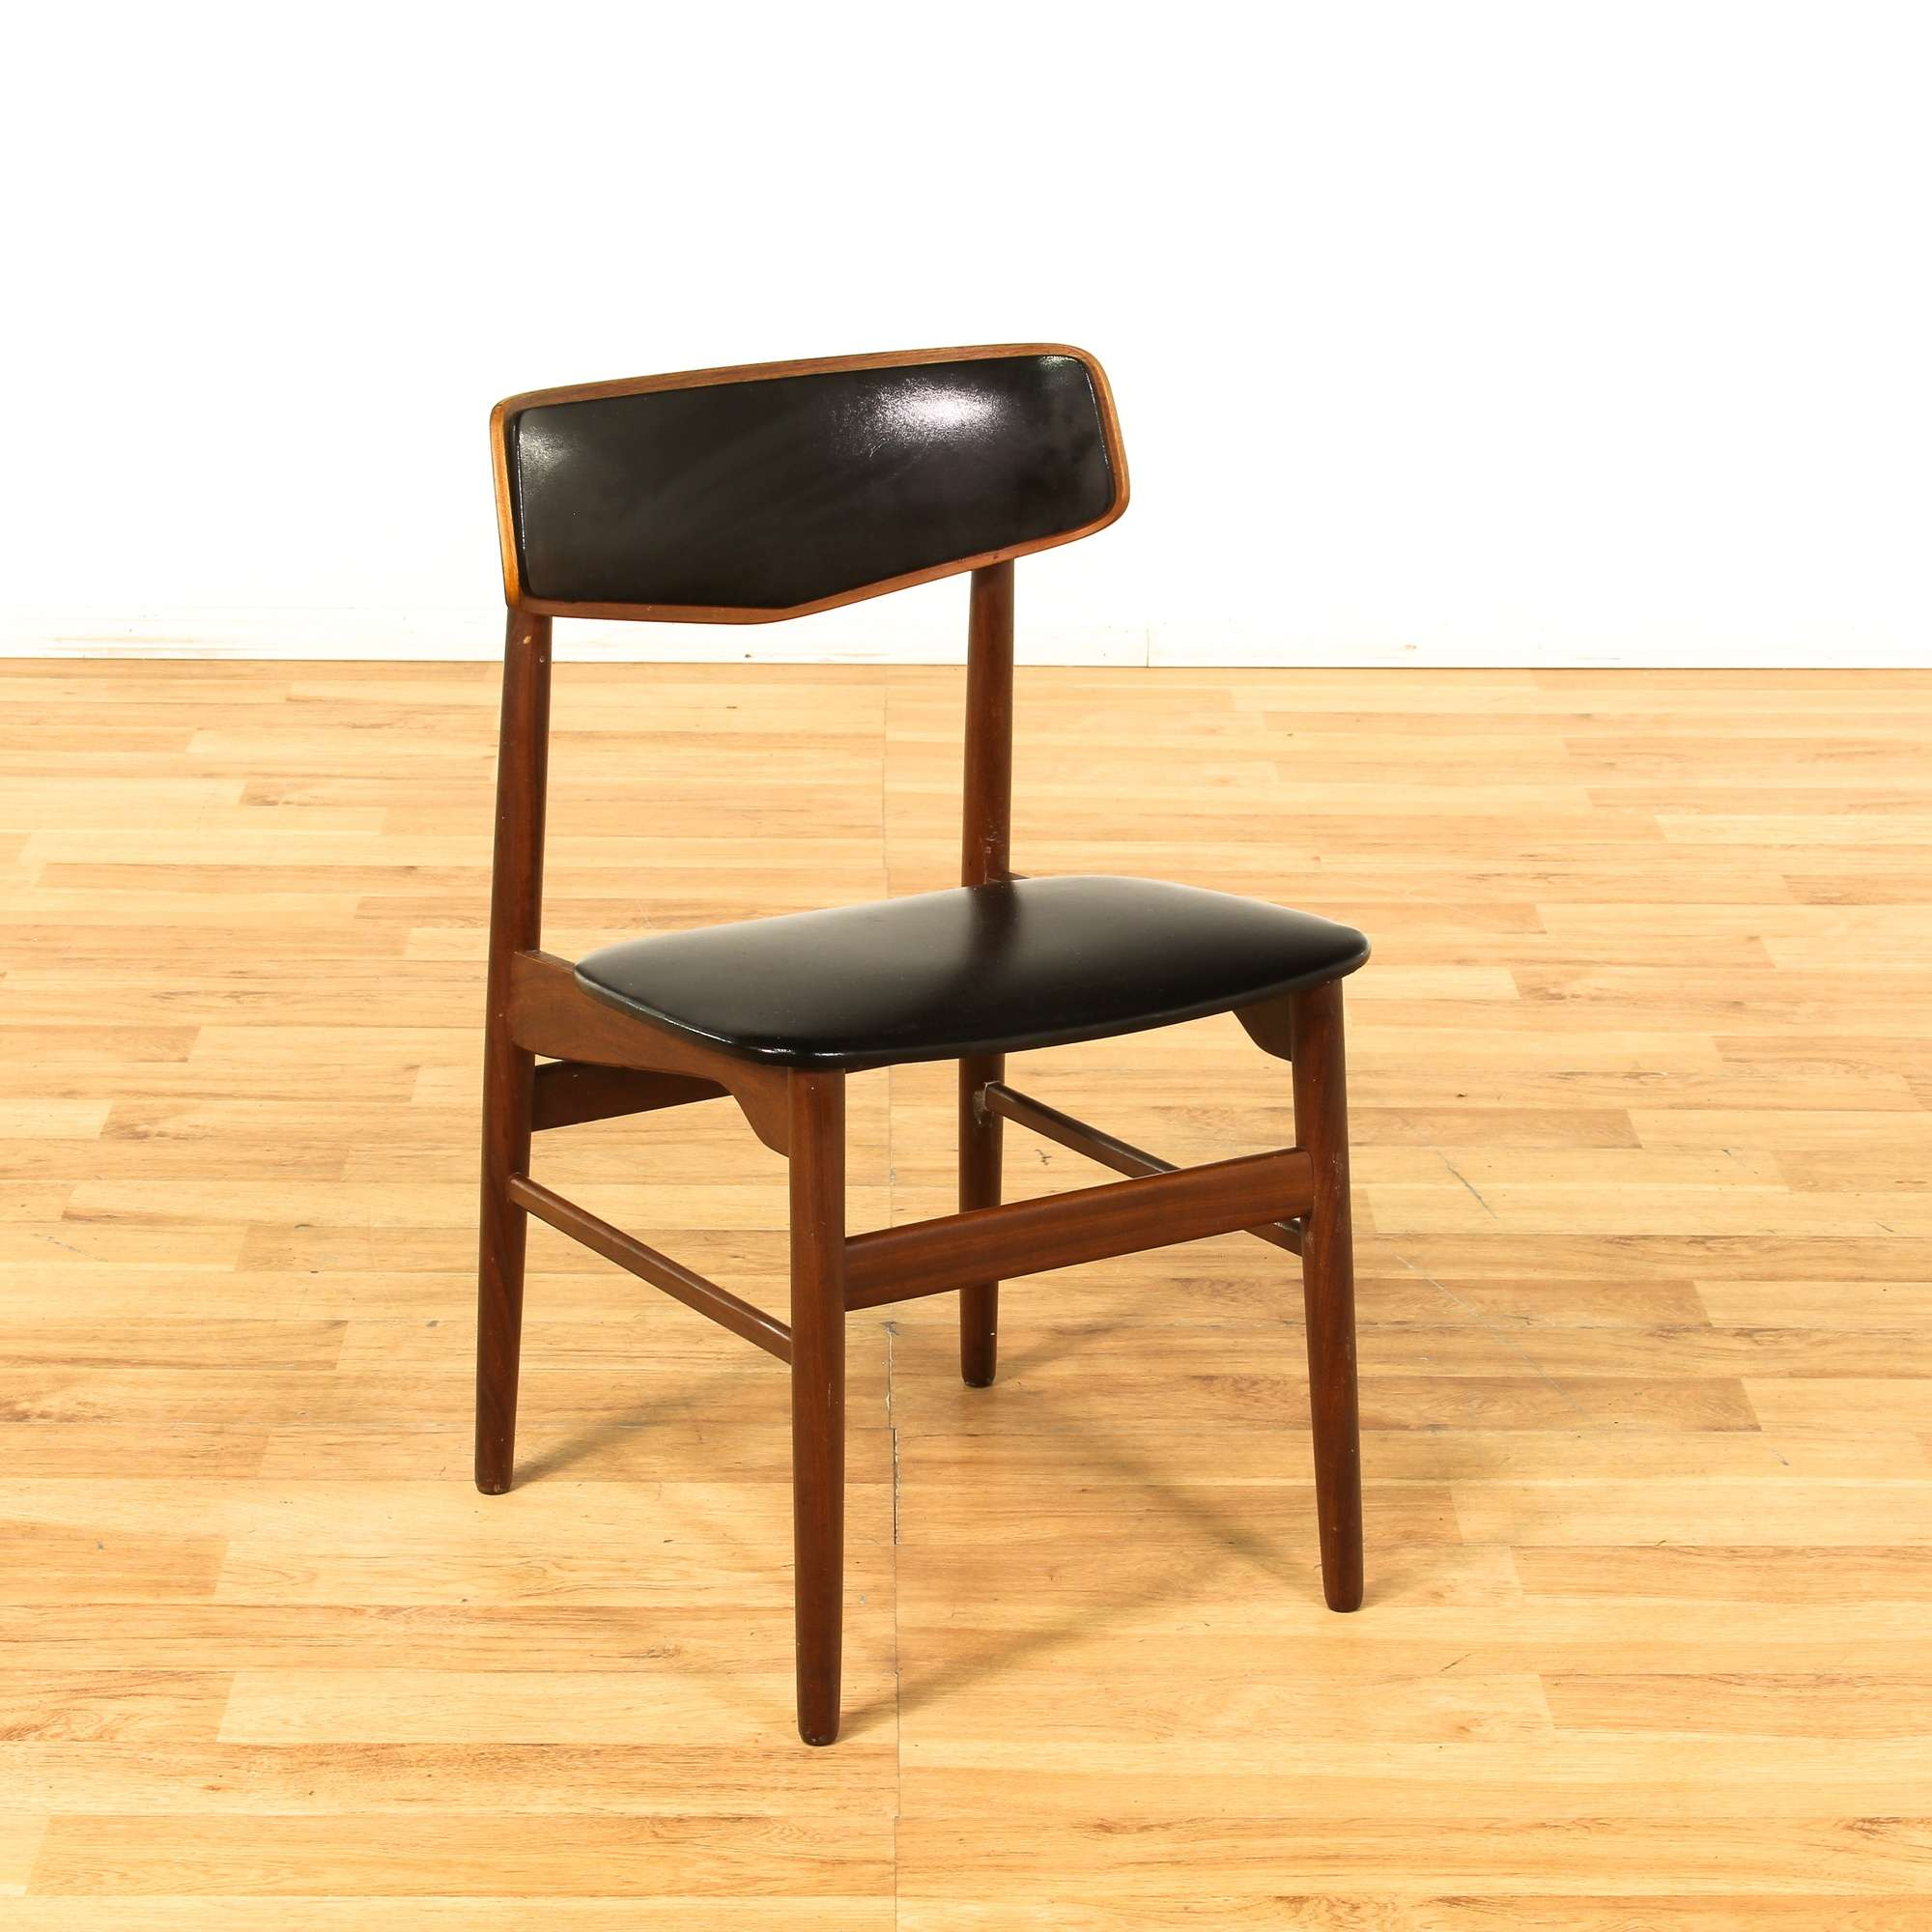 Image of: Mid Century Modern Dining Chair Black Leather Look Loveseat Online Auctions Los Angeles